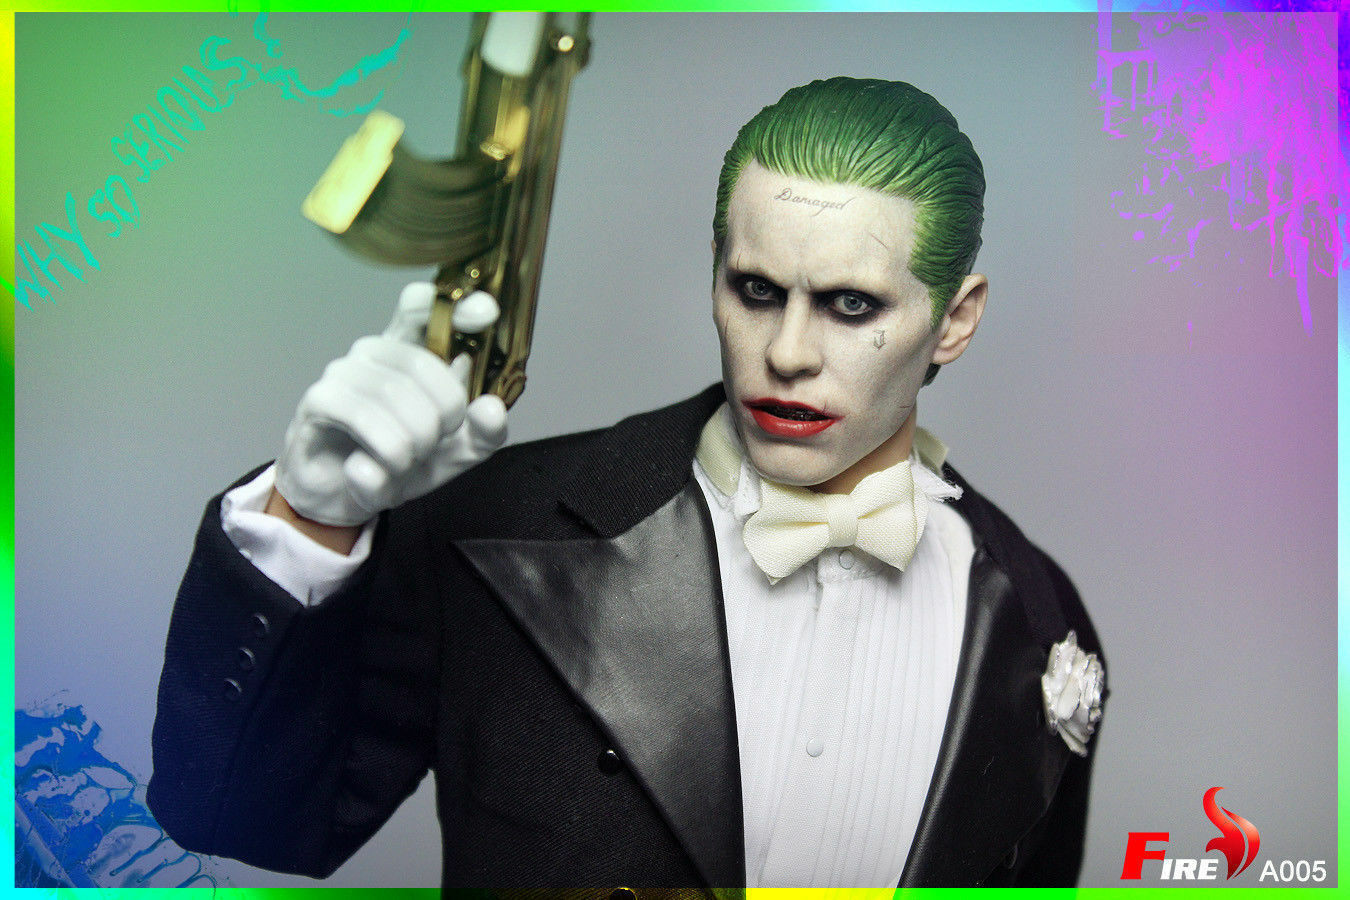 Fire Toys 1 6 Clown Joker Jared Leto Tuxedo Man Suit Head Sets A005 F 12''Figure